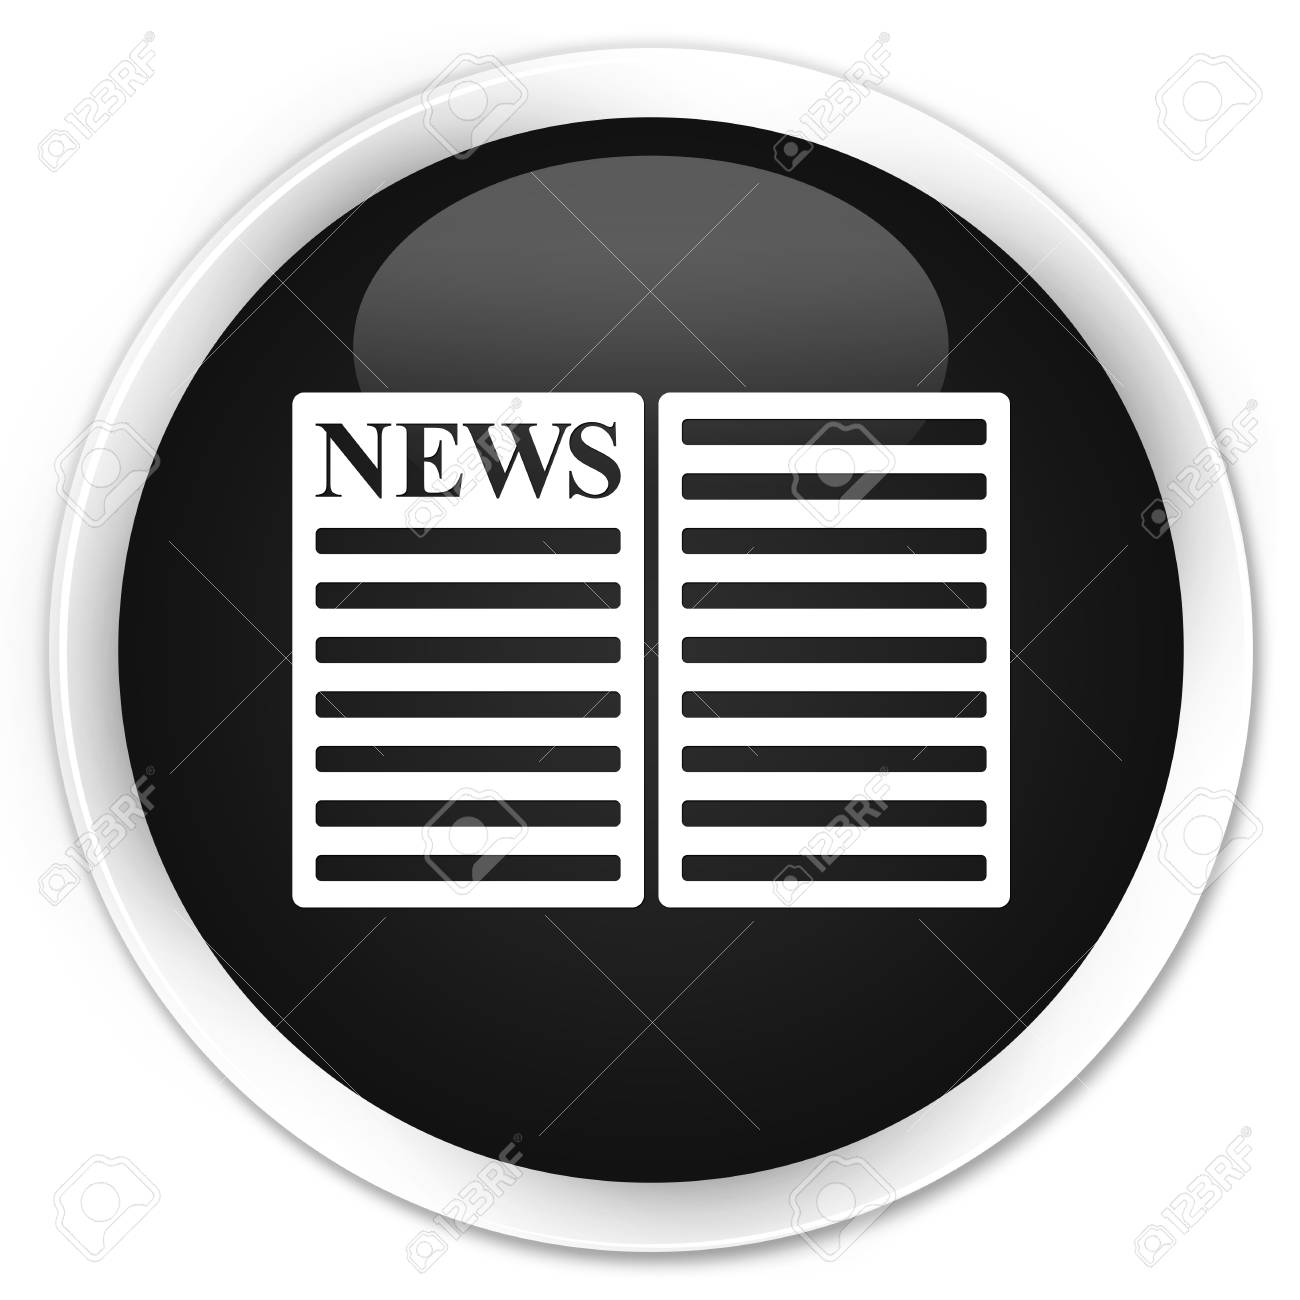 newspaper icon black glossy round button stock photo, picture and